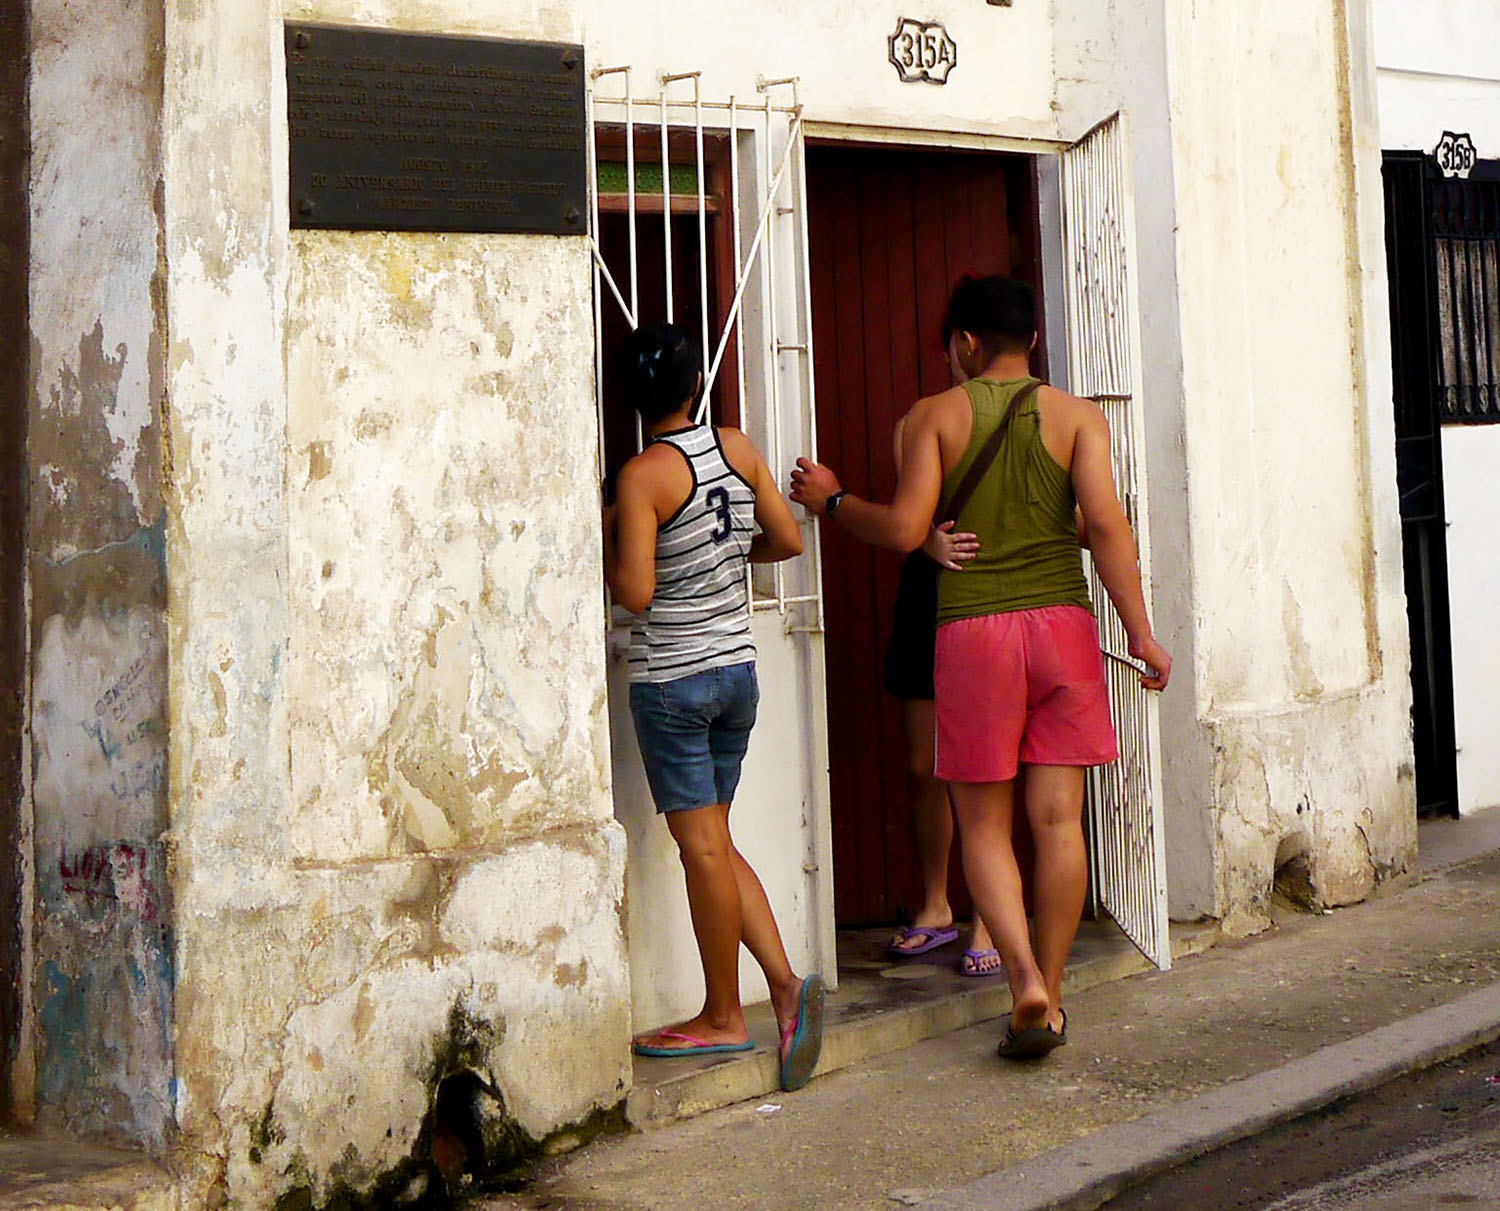 A man is greeted by the arms of a woman in a doorway in Havana.